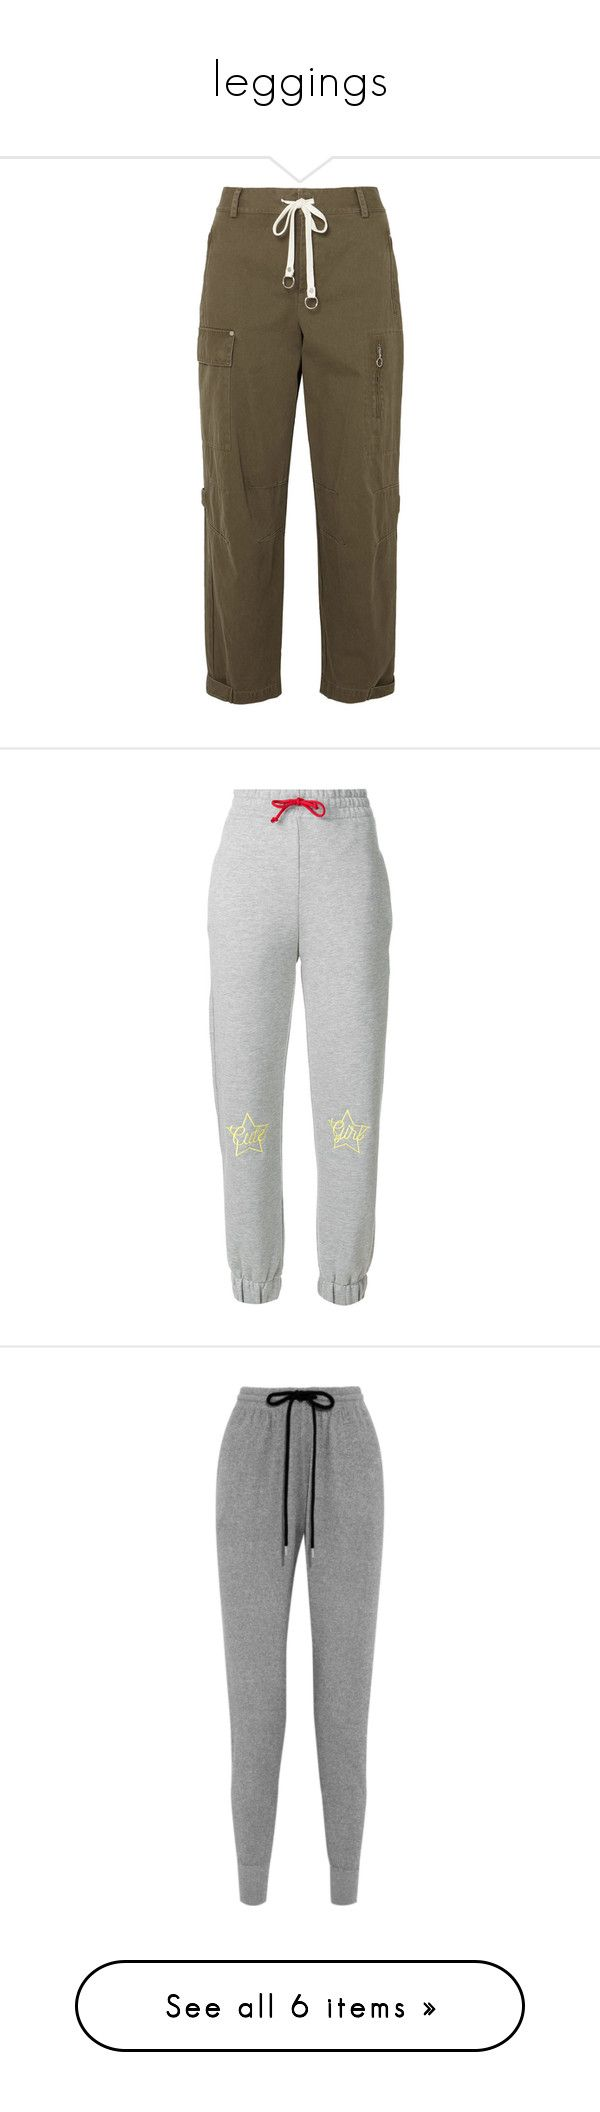 """""""leggings"""" by barbymollon ❤ liked on Polyvore featuring pants, jeans, army green, tapered fit pants, olive green pants, brown trousers, brown pants, military green pants, activewear and activewear pants"""